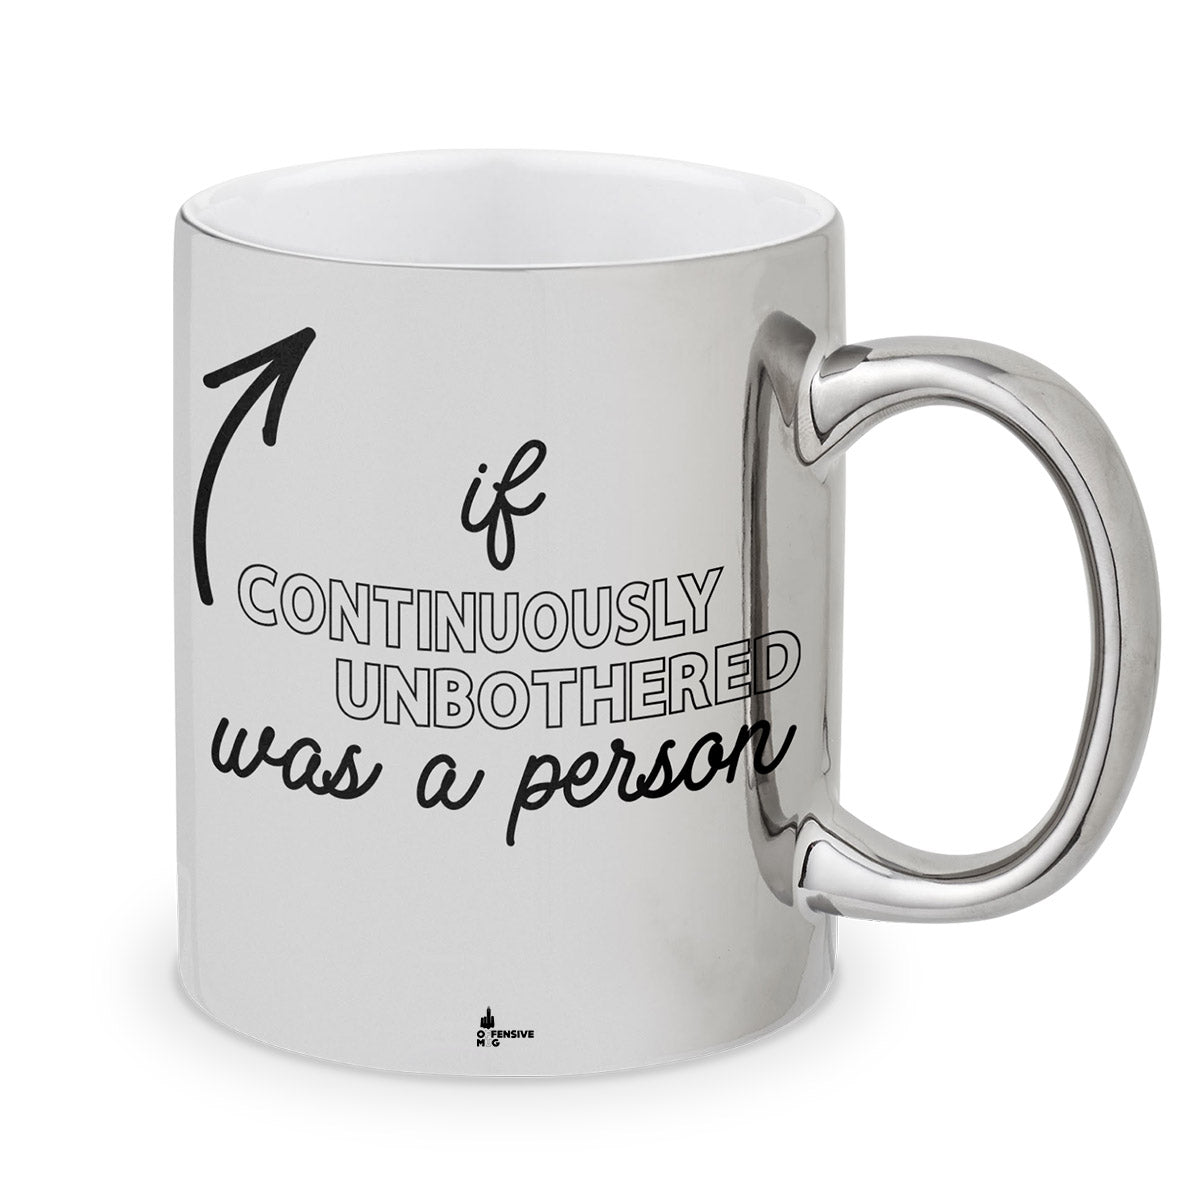 Nana Metal Plated Mug - Offensive Mug